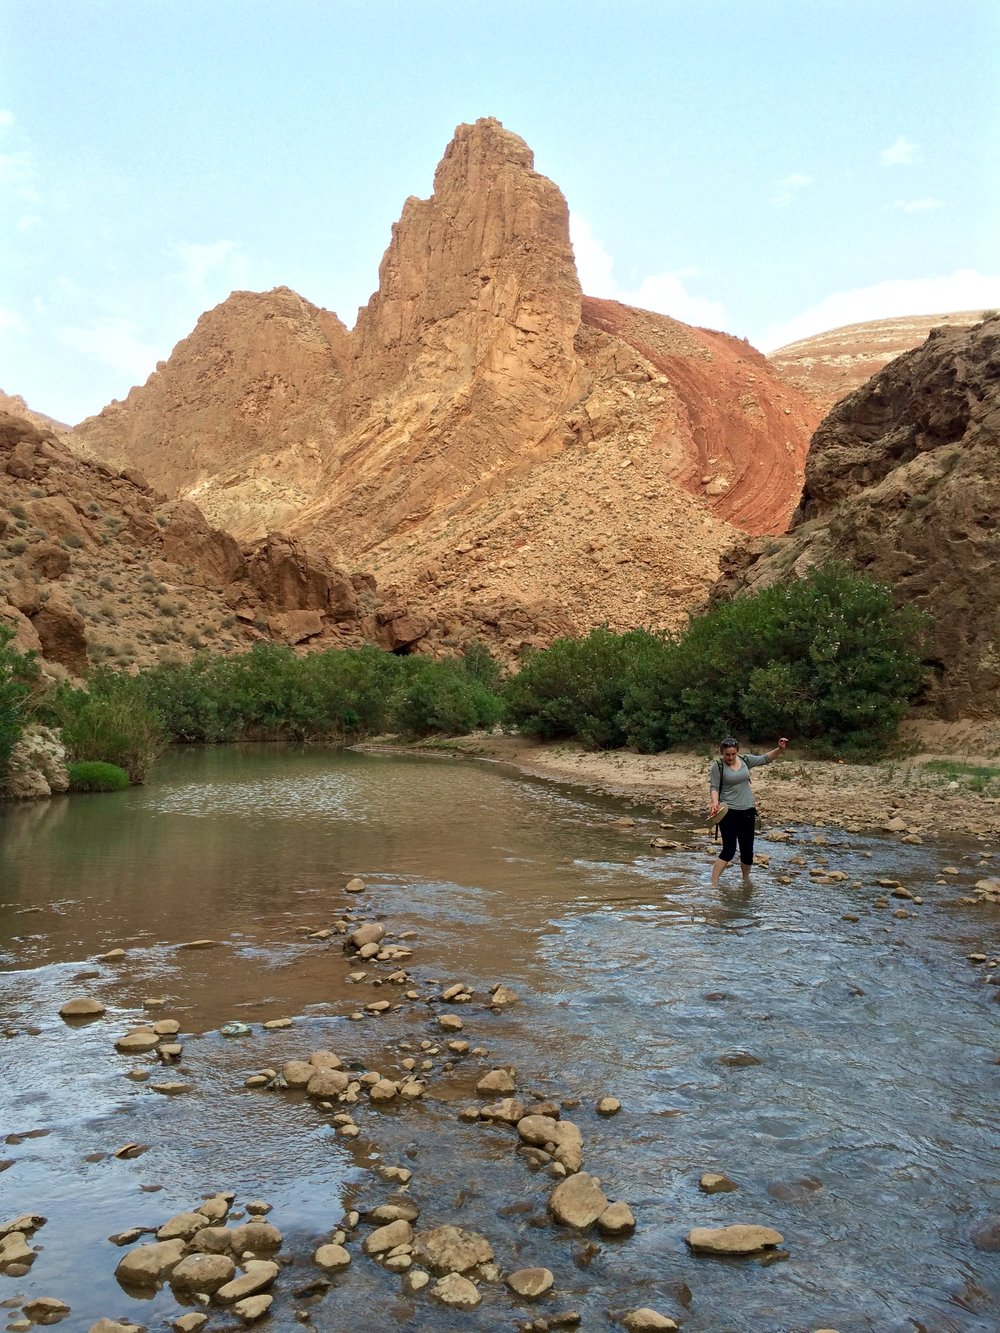 Hiking through the Dades Valley